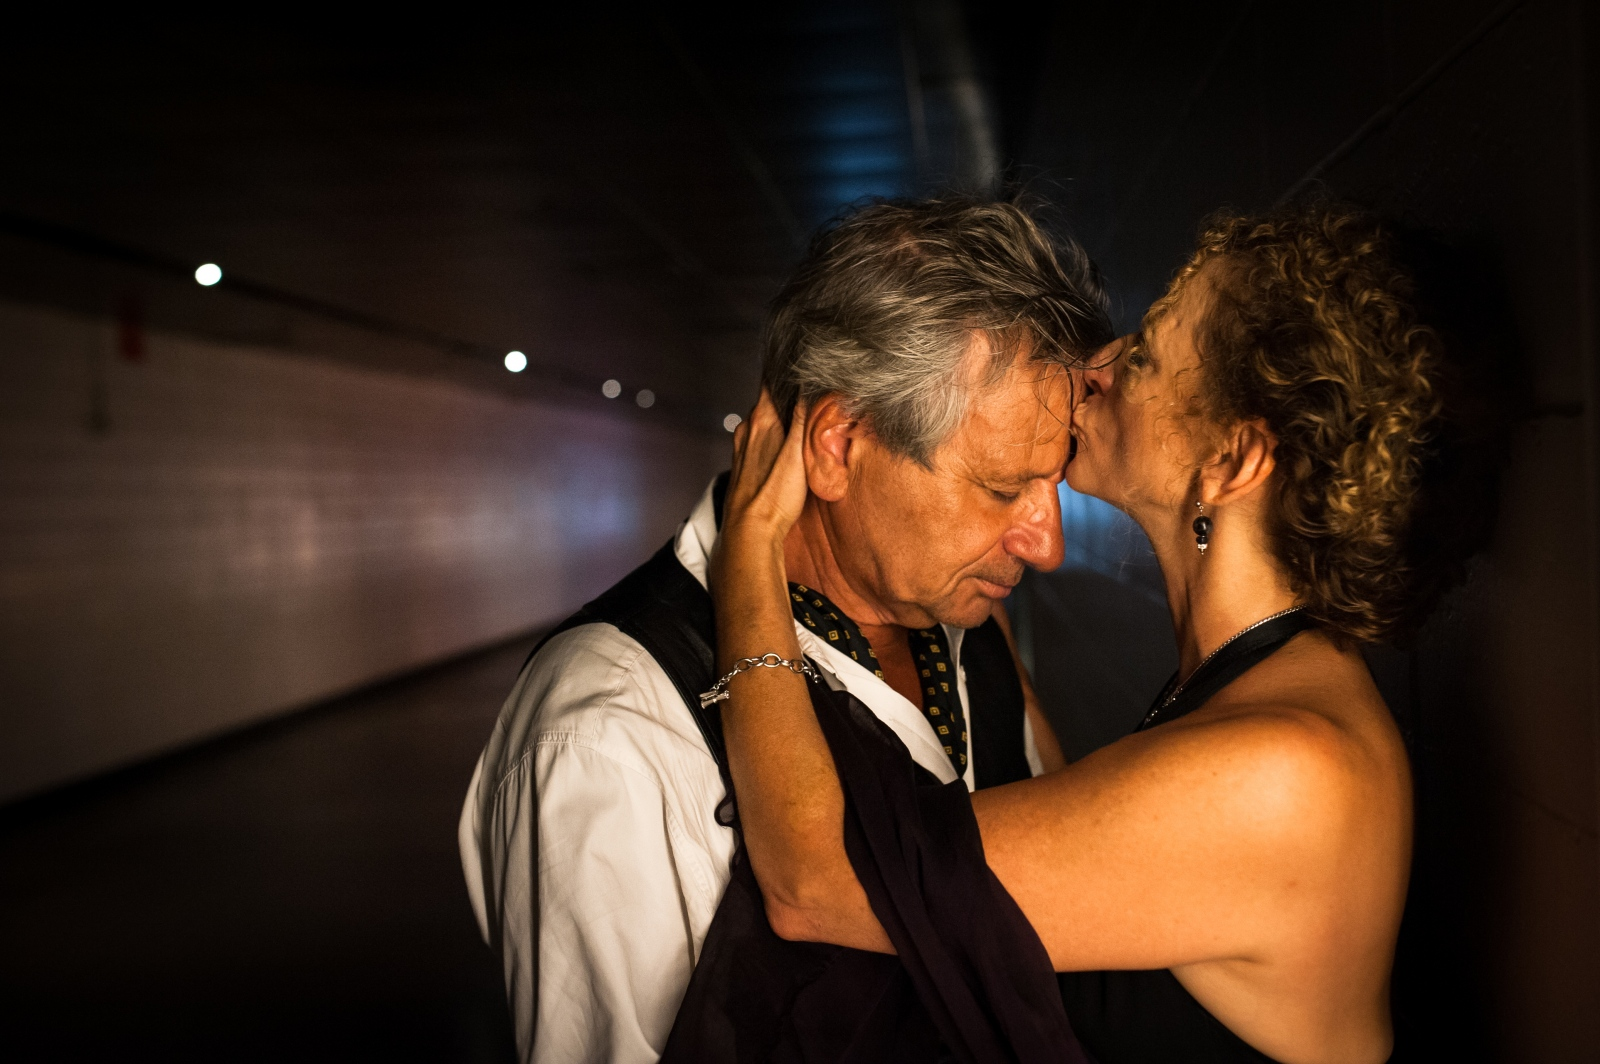 Suki John and Horacio Cocchi in a tunnel beneath Lincoln Center in New York City. The couple, who met at a cafe on the Upper West Side, were featured in The New York Times Vows section 20 years ago.Photographedfor The New York Times